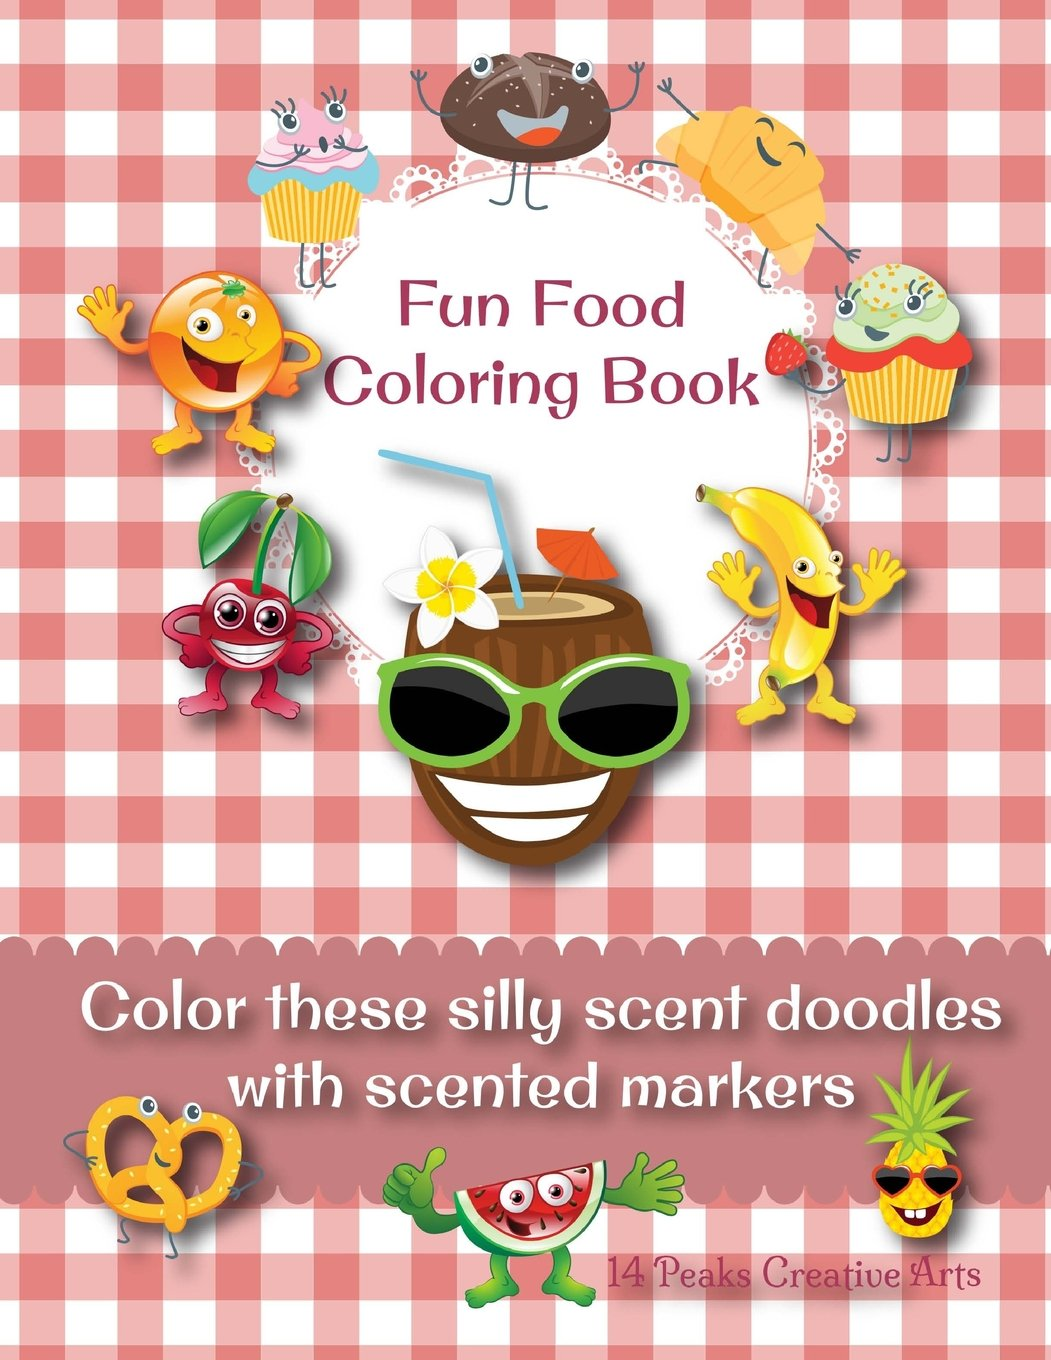 Fun Food Coloring Book Color These Silly Scent Doodles With